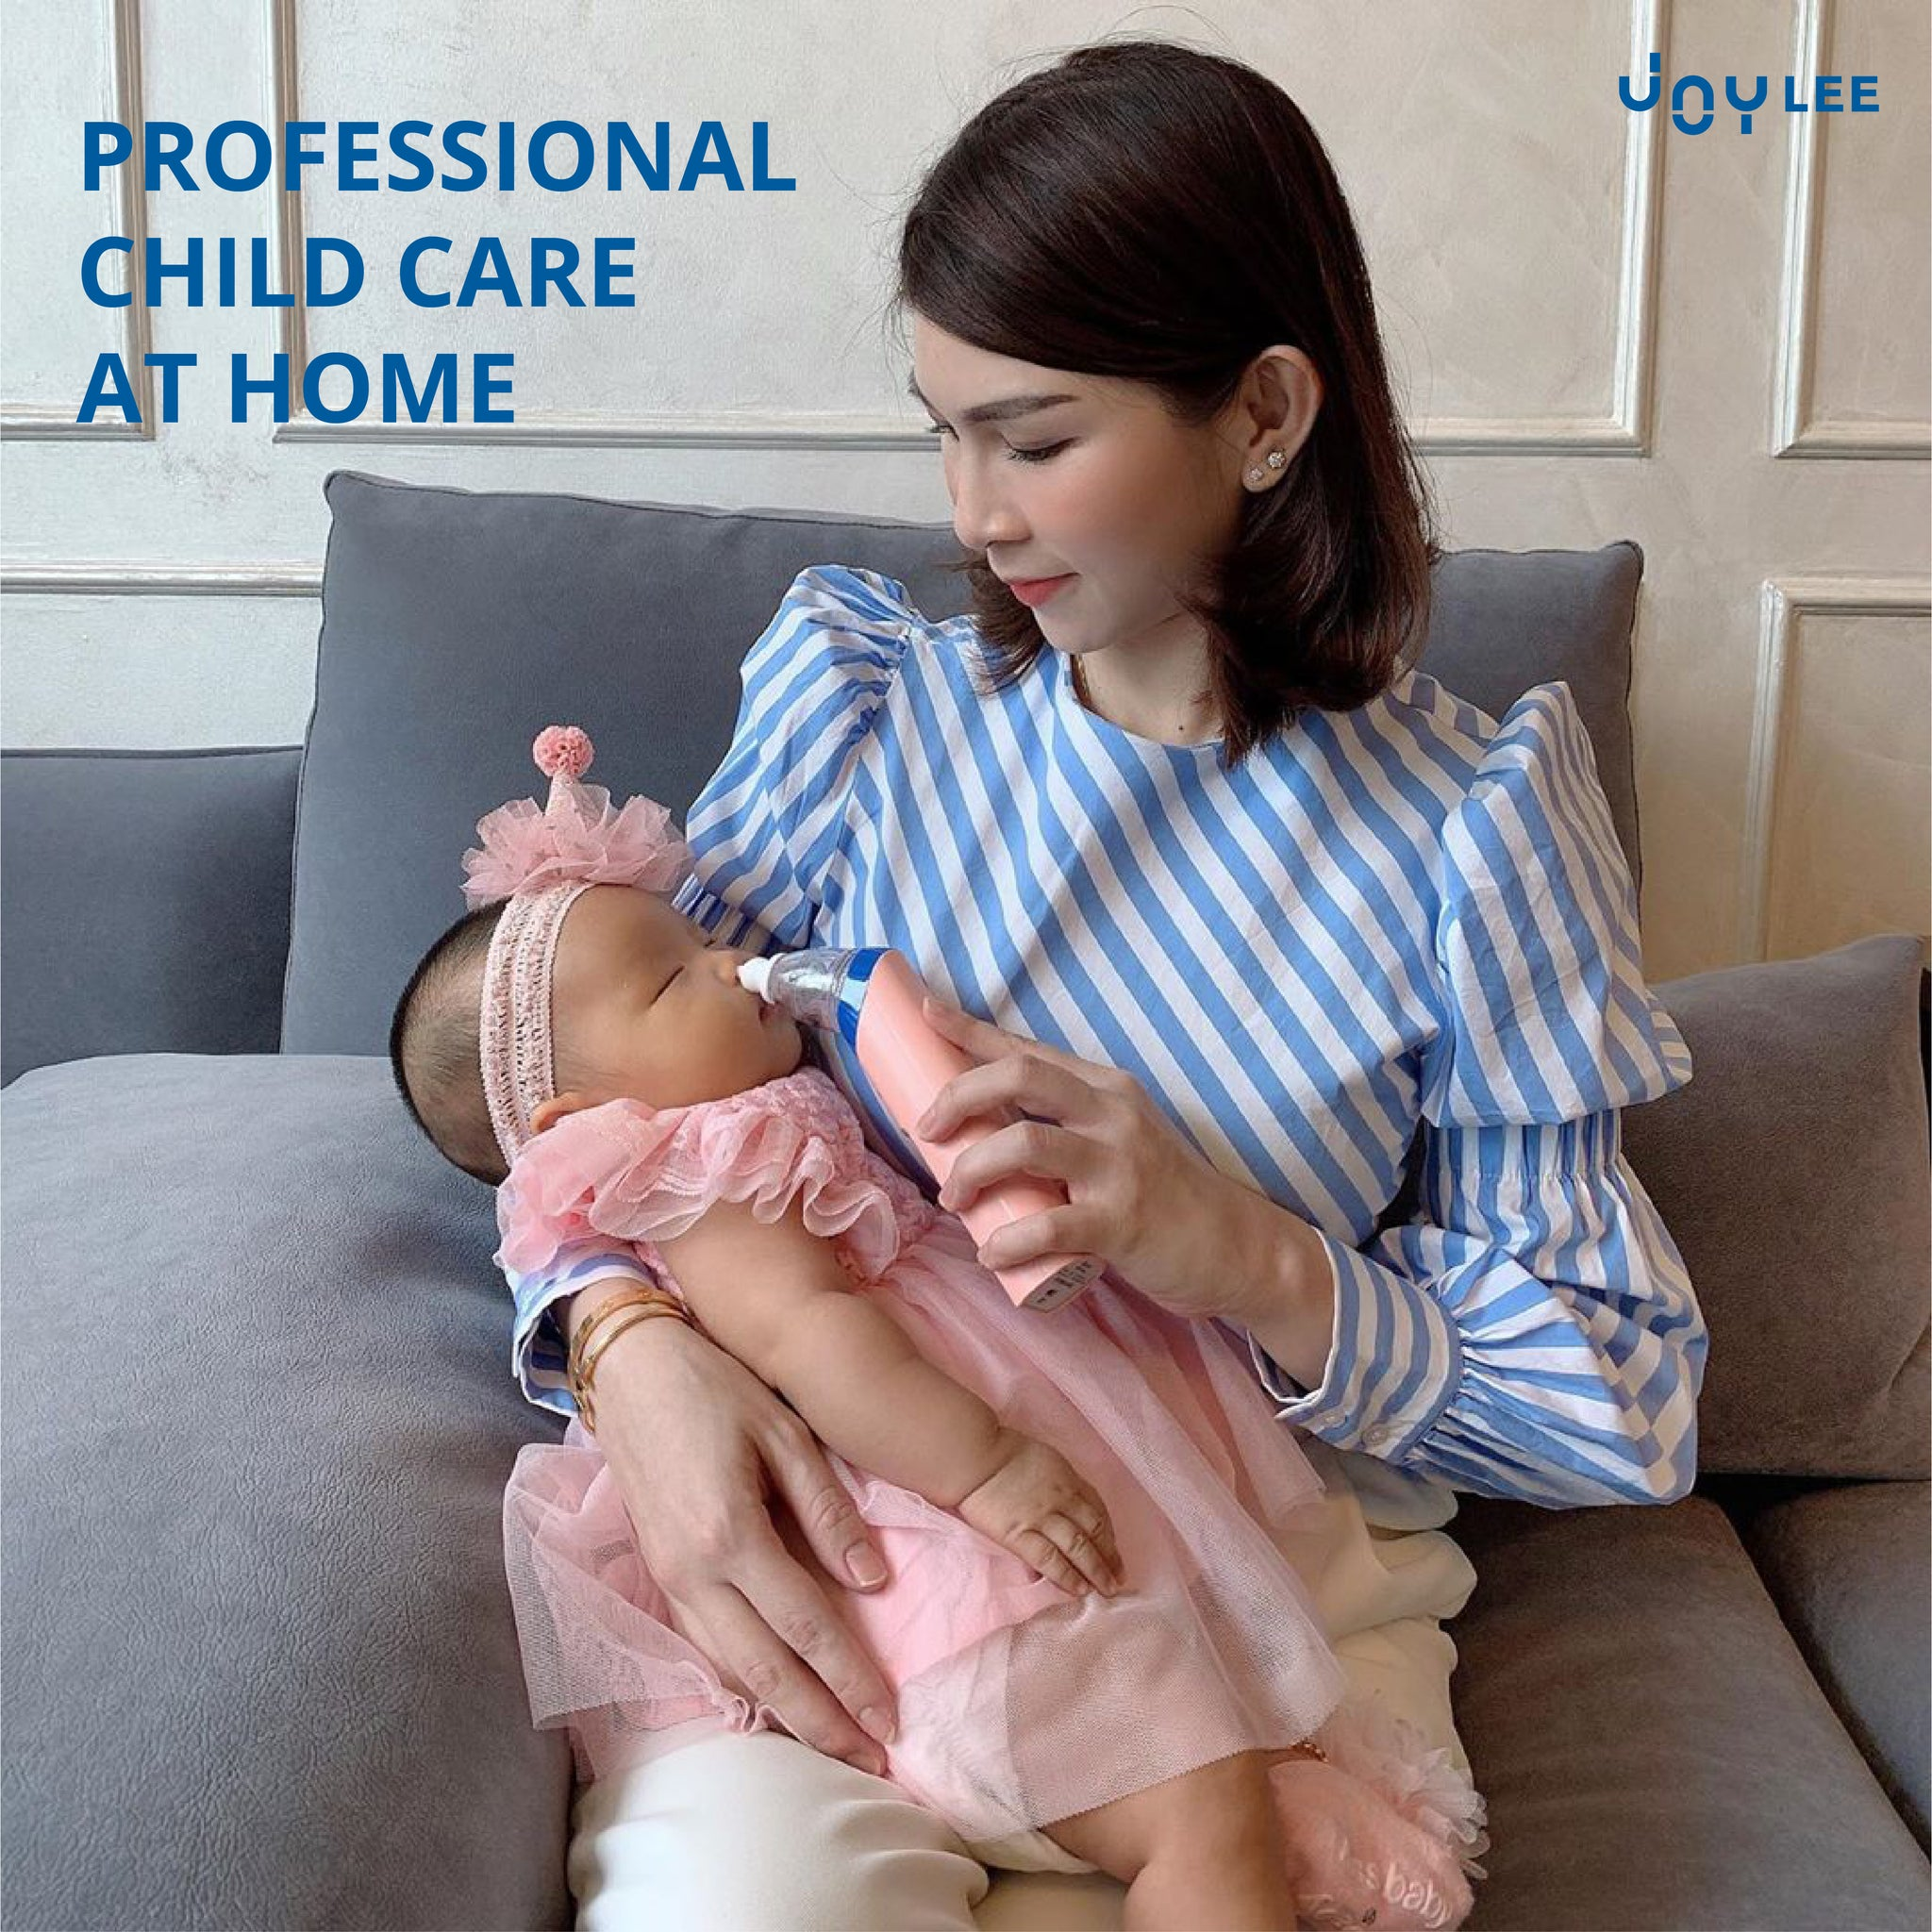 professional child care at home